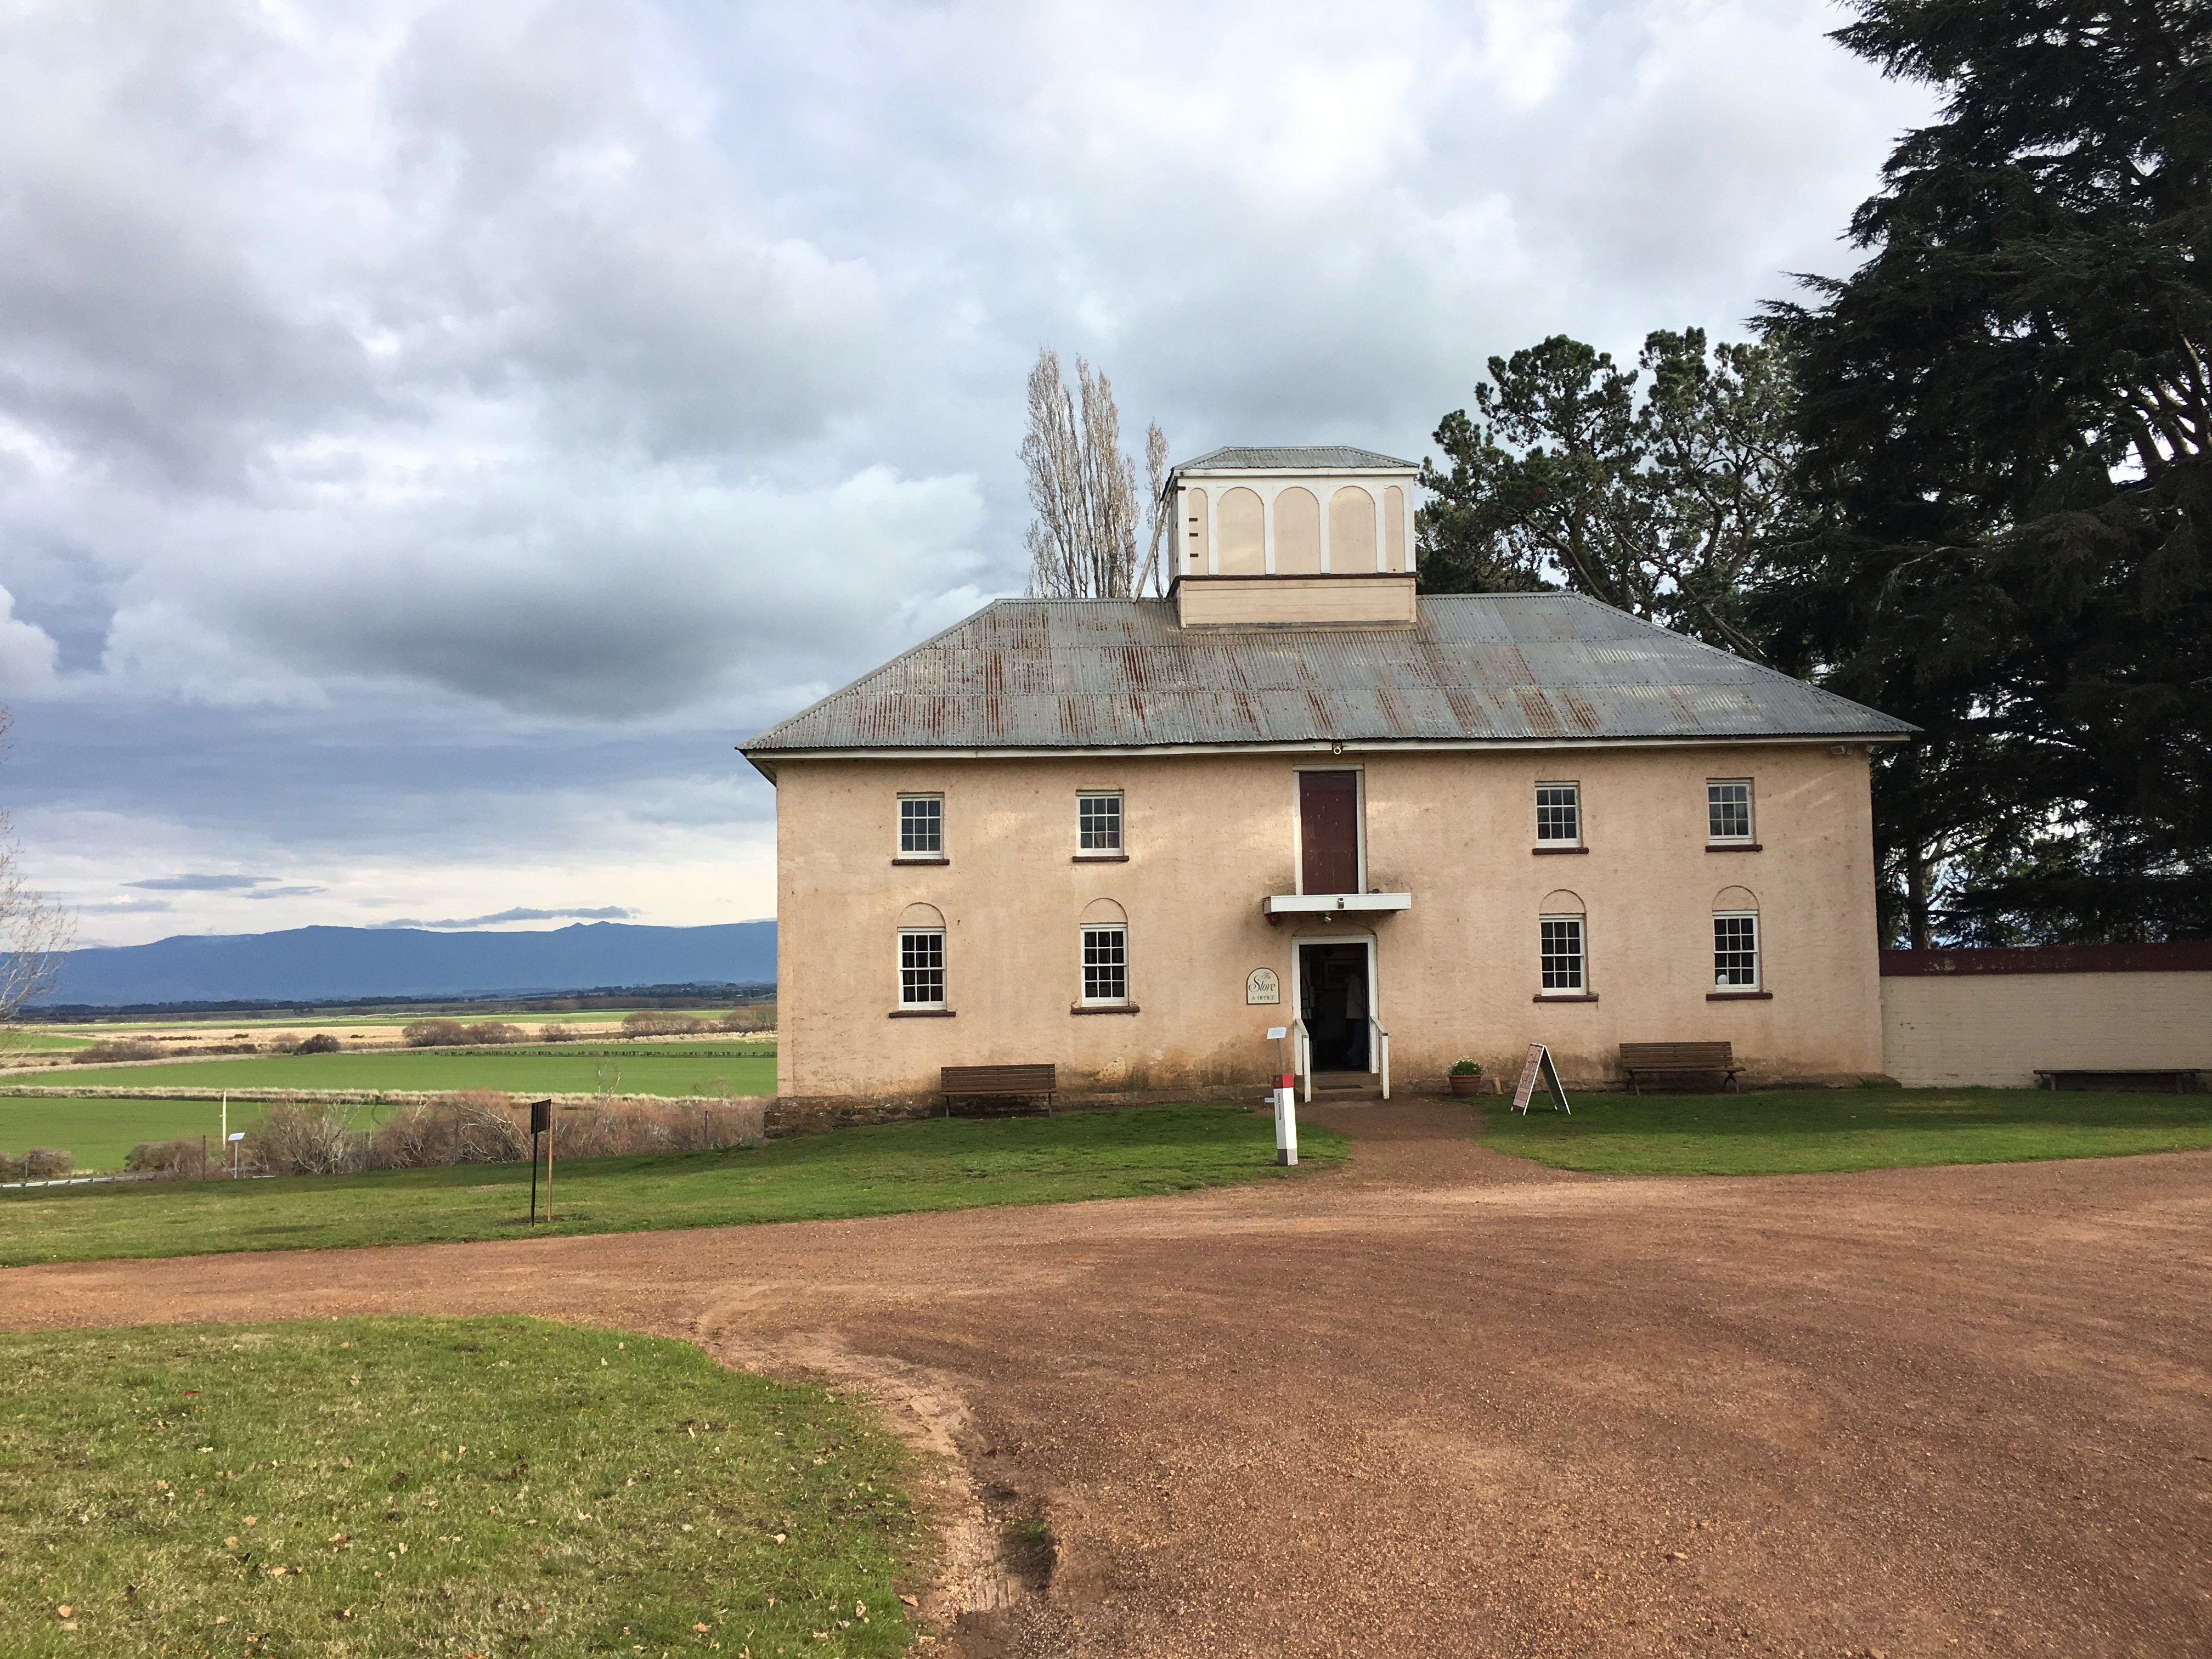 Woolmers Estate, near Launceston Tasmania